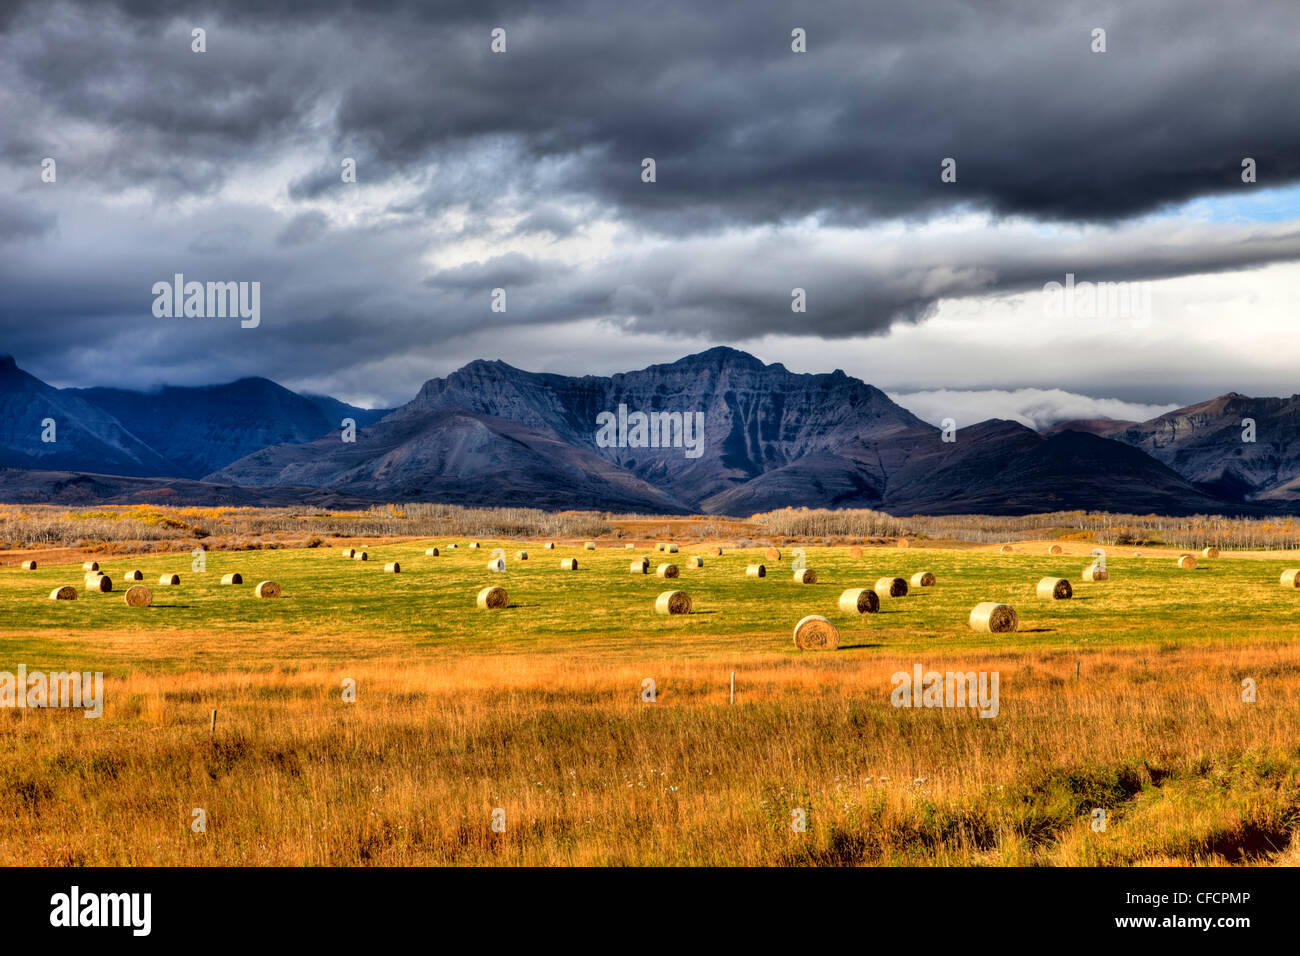 Prairies meet the Rocky Mountains, near Waterton Lakes National Park, Alberta, Canada Stock Photo